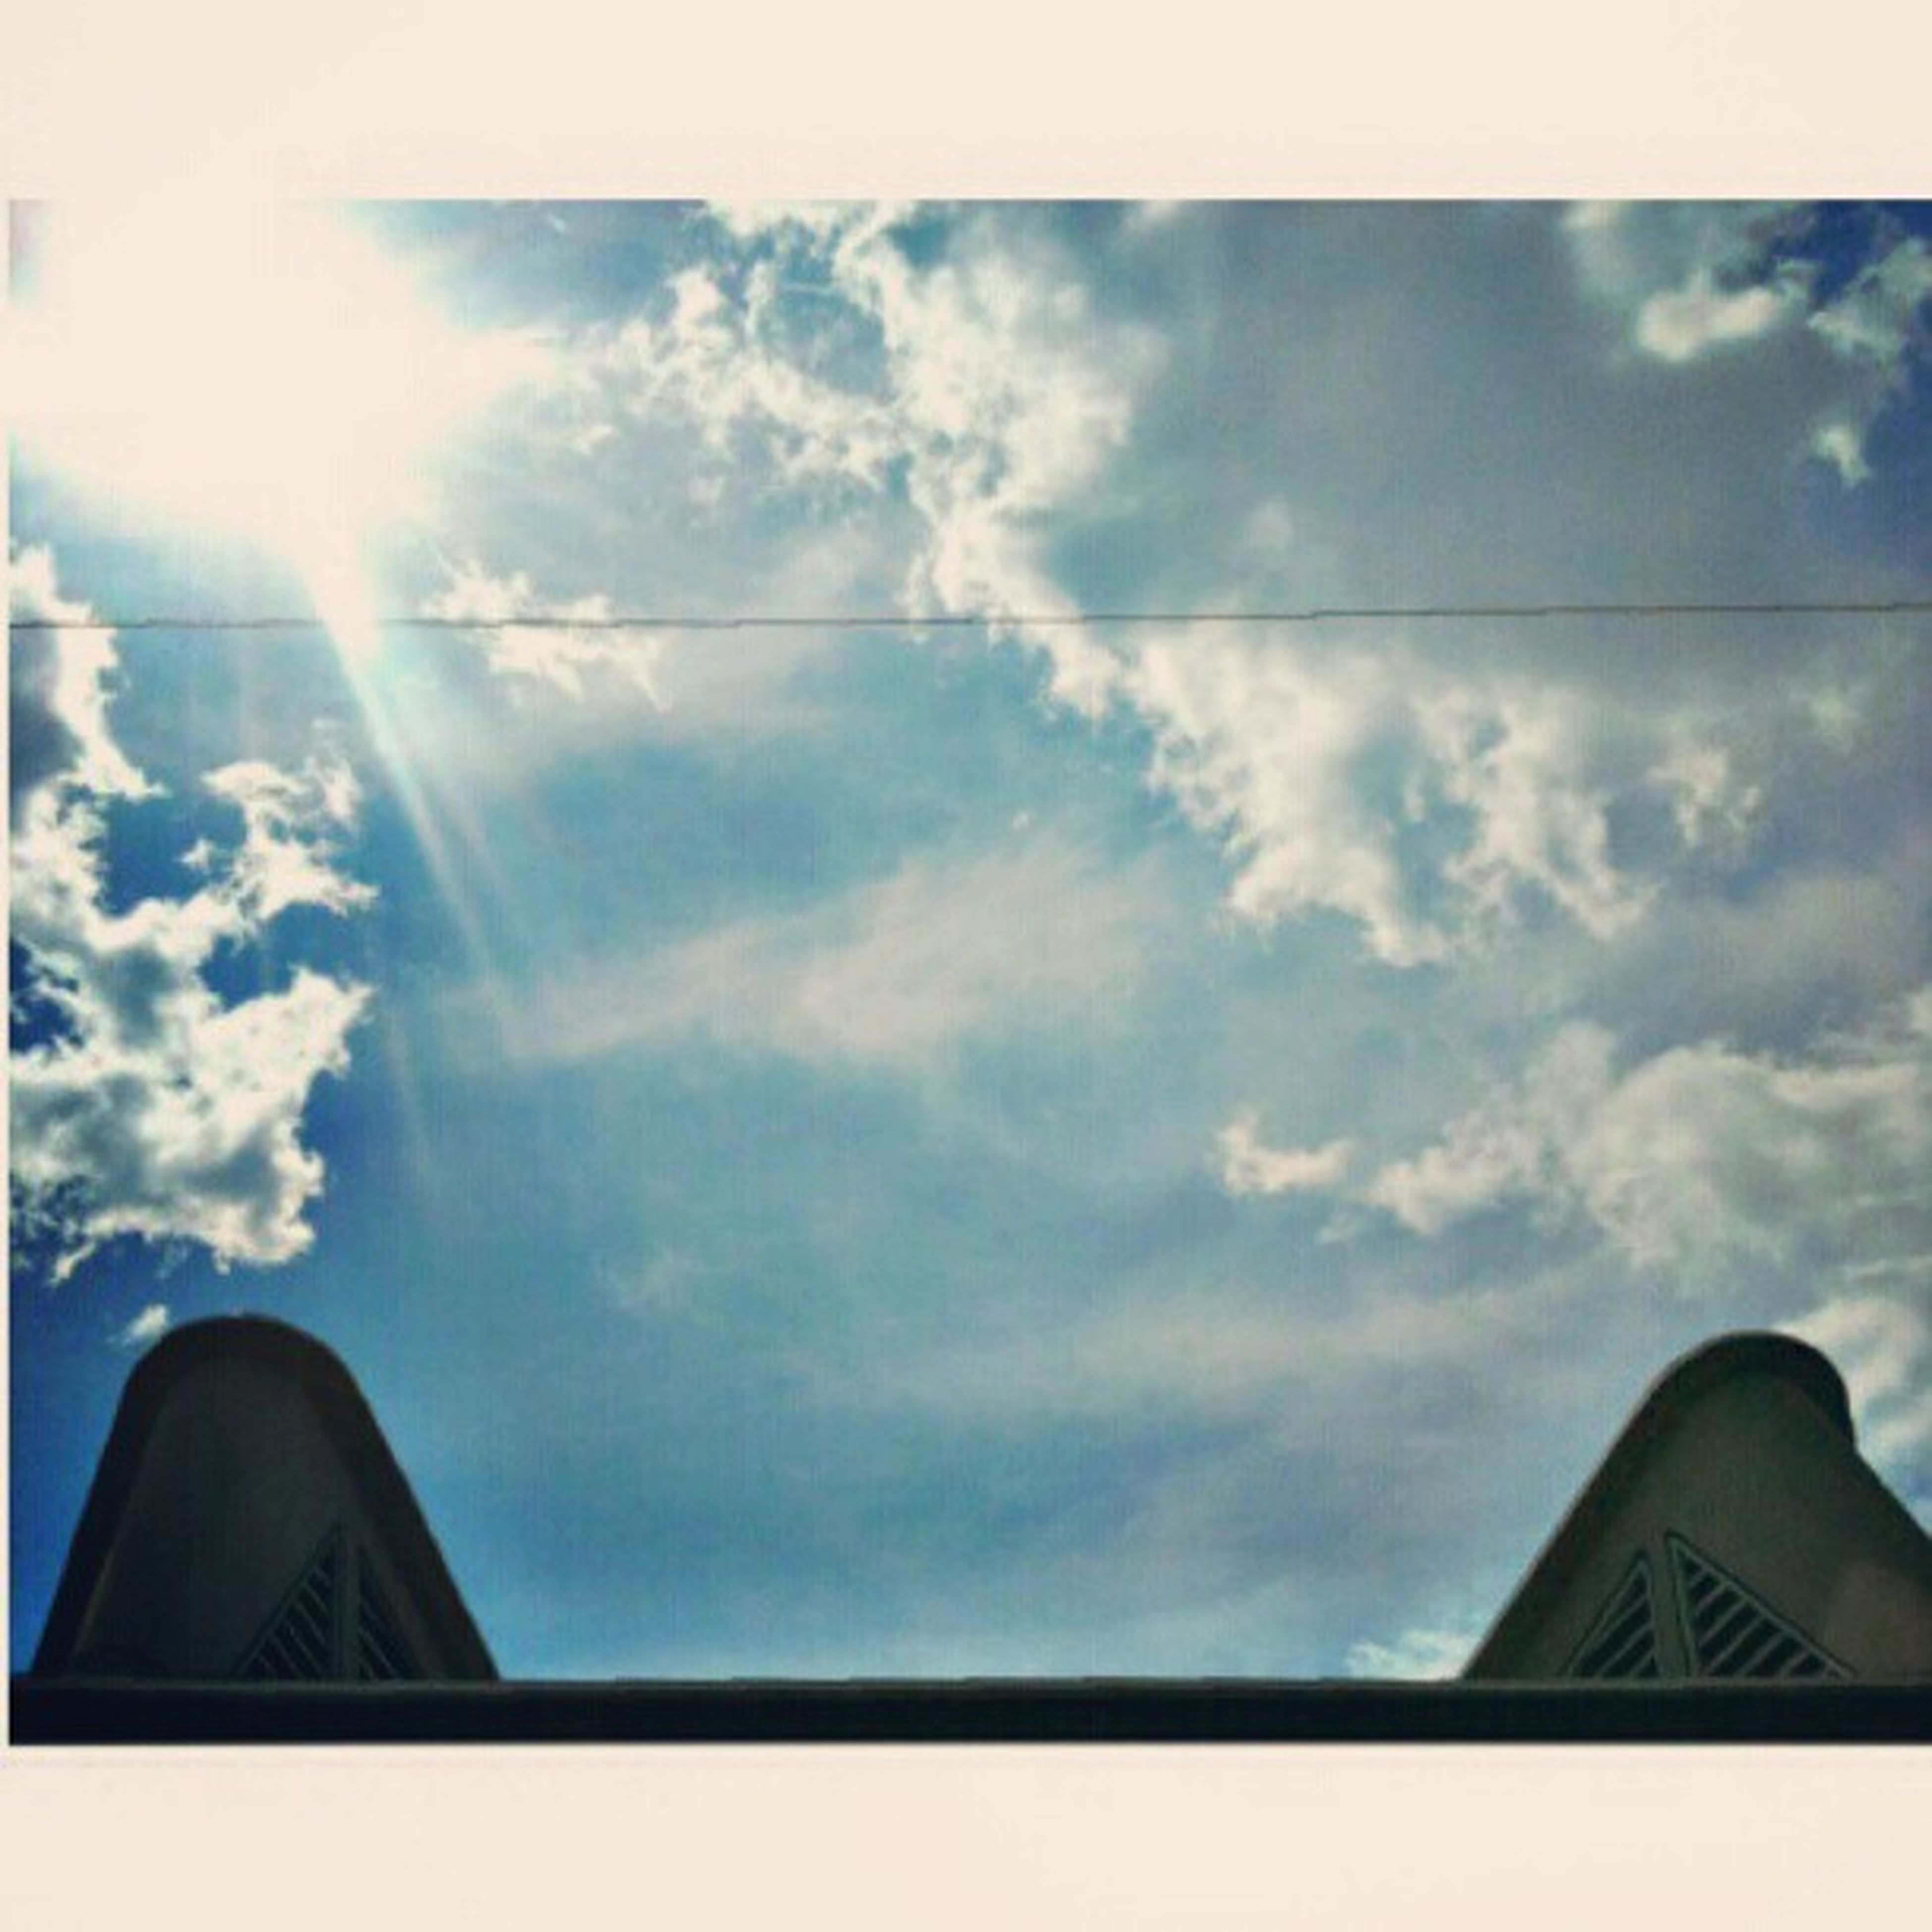 sky, low angle view, cloud - sky, building exterior, architecture, built structure, cloud, cloudy, high section, part of, blue, outdoors, day, sunlight, nature, no people, cloudscape, window, cropped, house